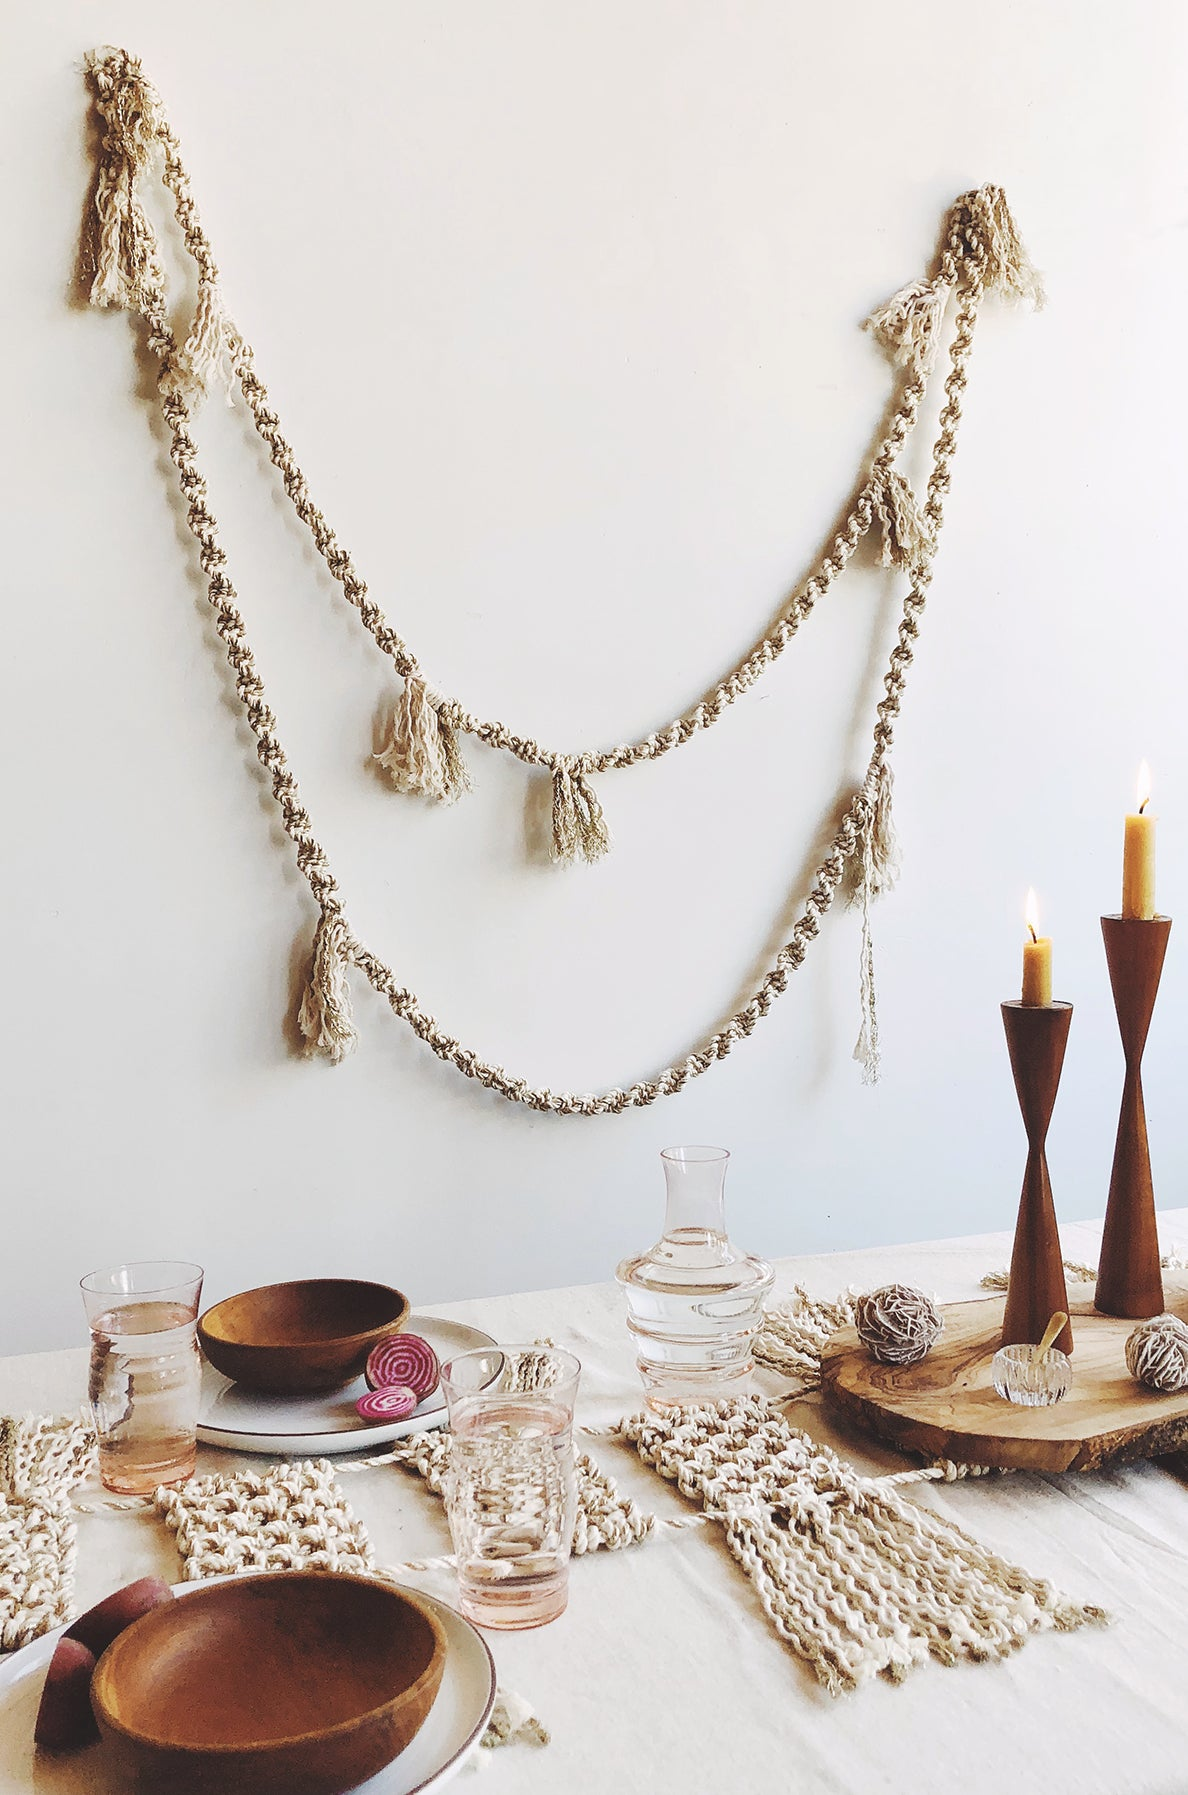 DIY Macramé Pattern for a 16' winter garland made with Modern Macramé natural cotton and metallic gold rope.